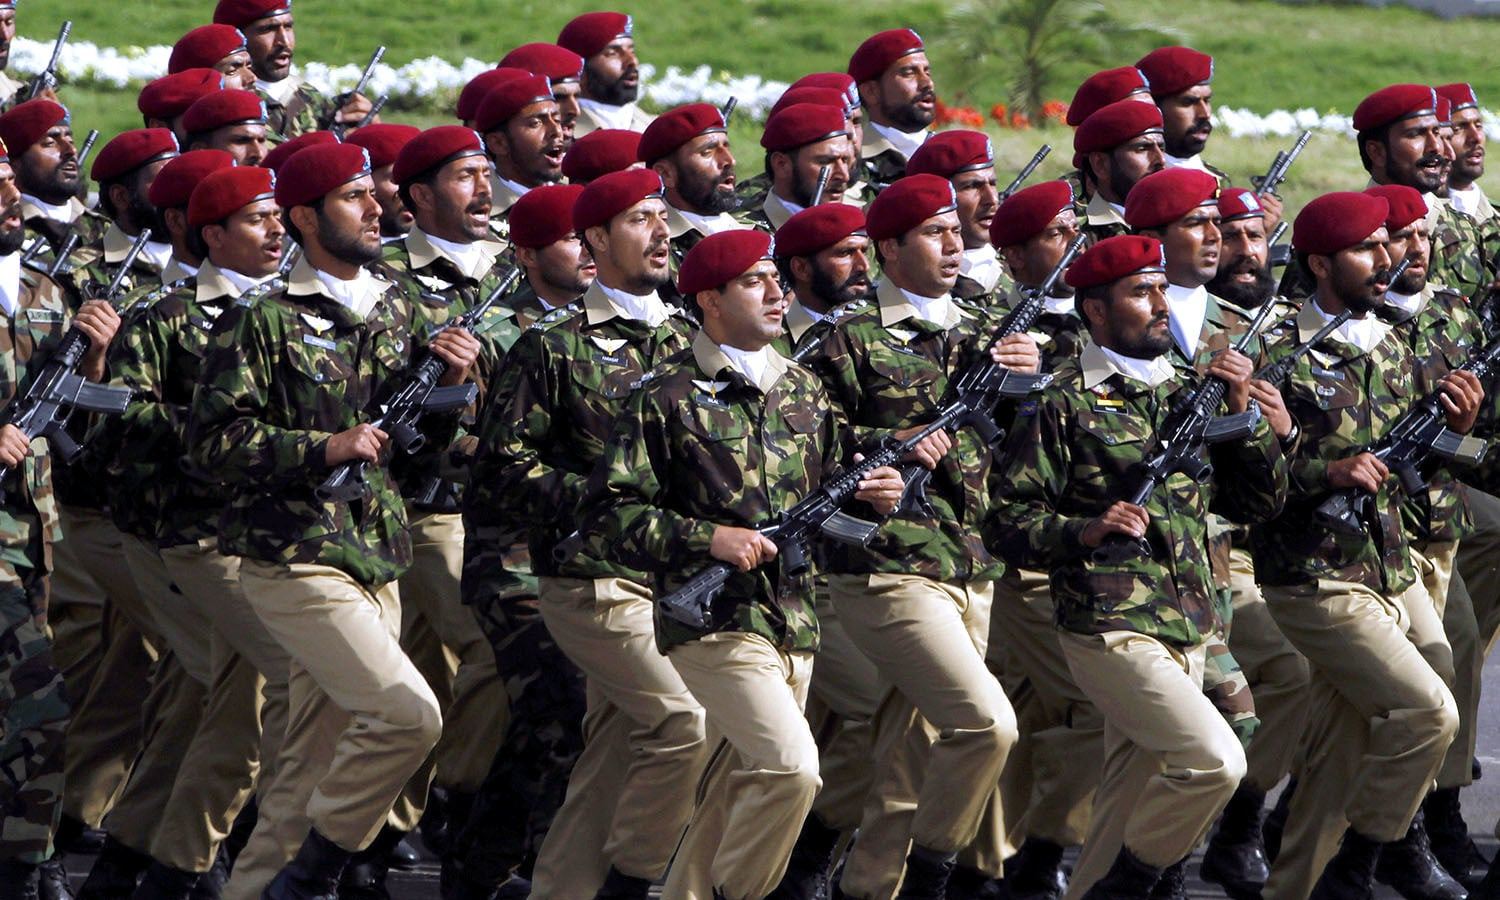 Special forces from the Special Services Group (SSG) march during the Pakistan Day military parade. ─ AP